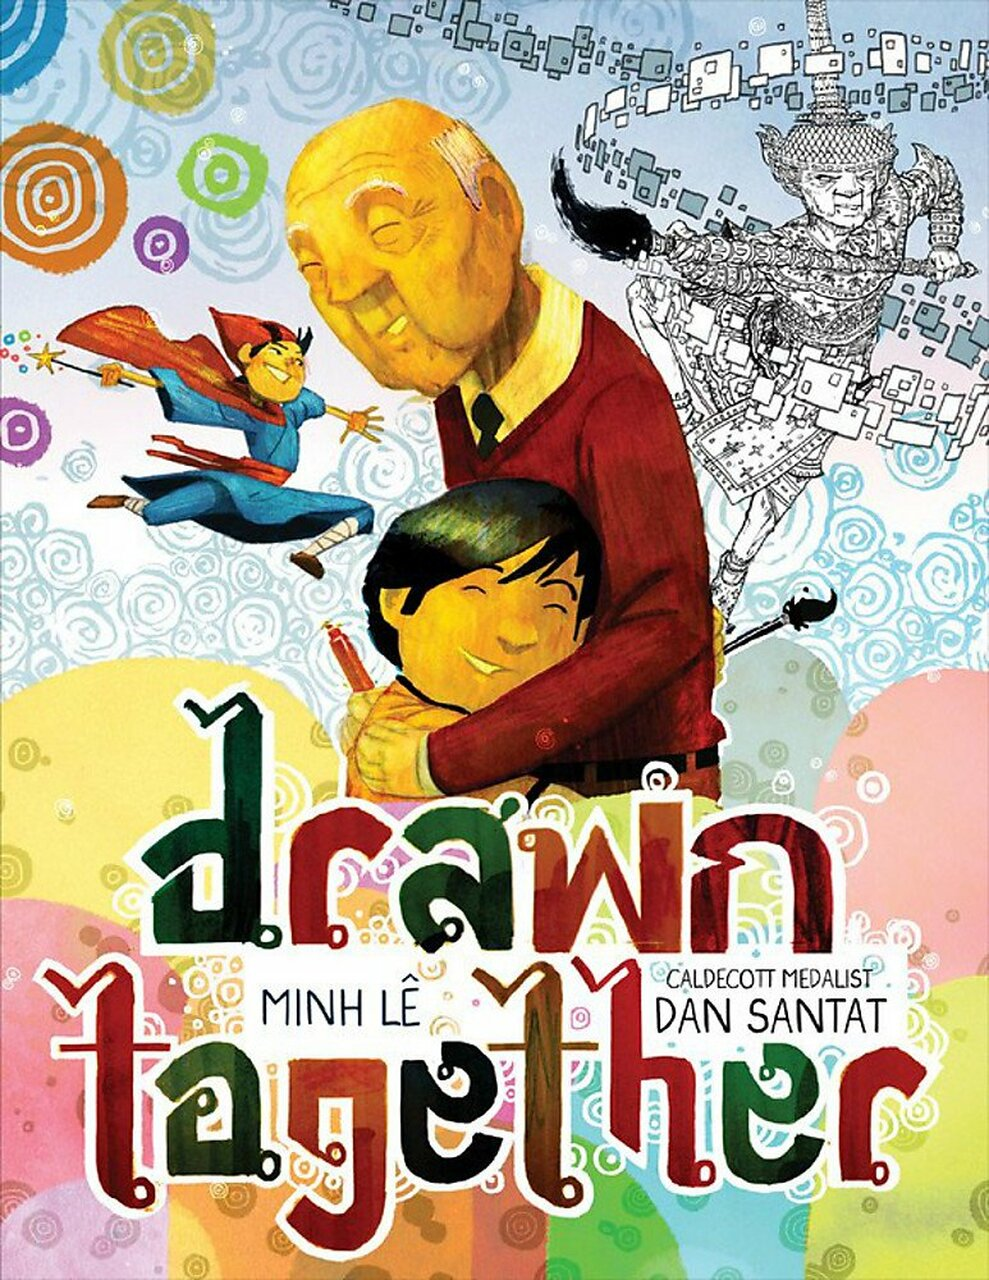 Drawn Together by Minh Le